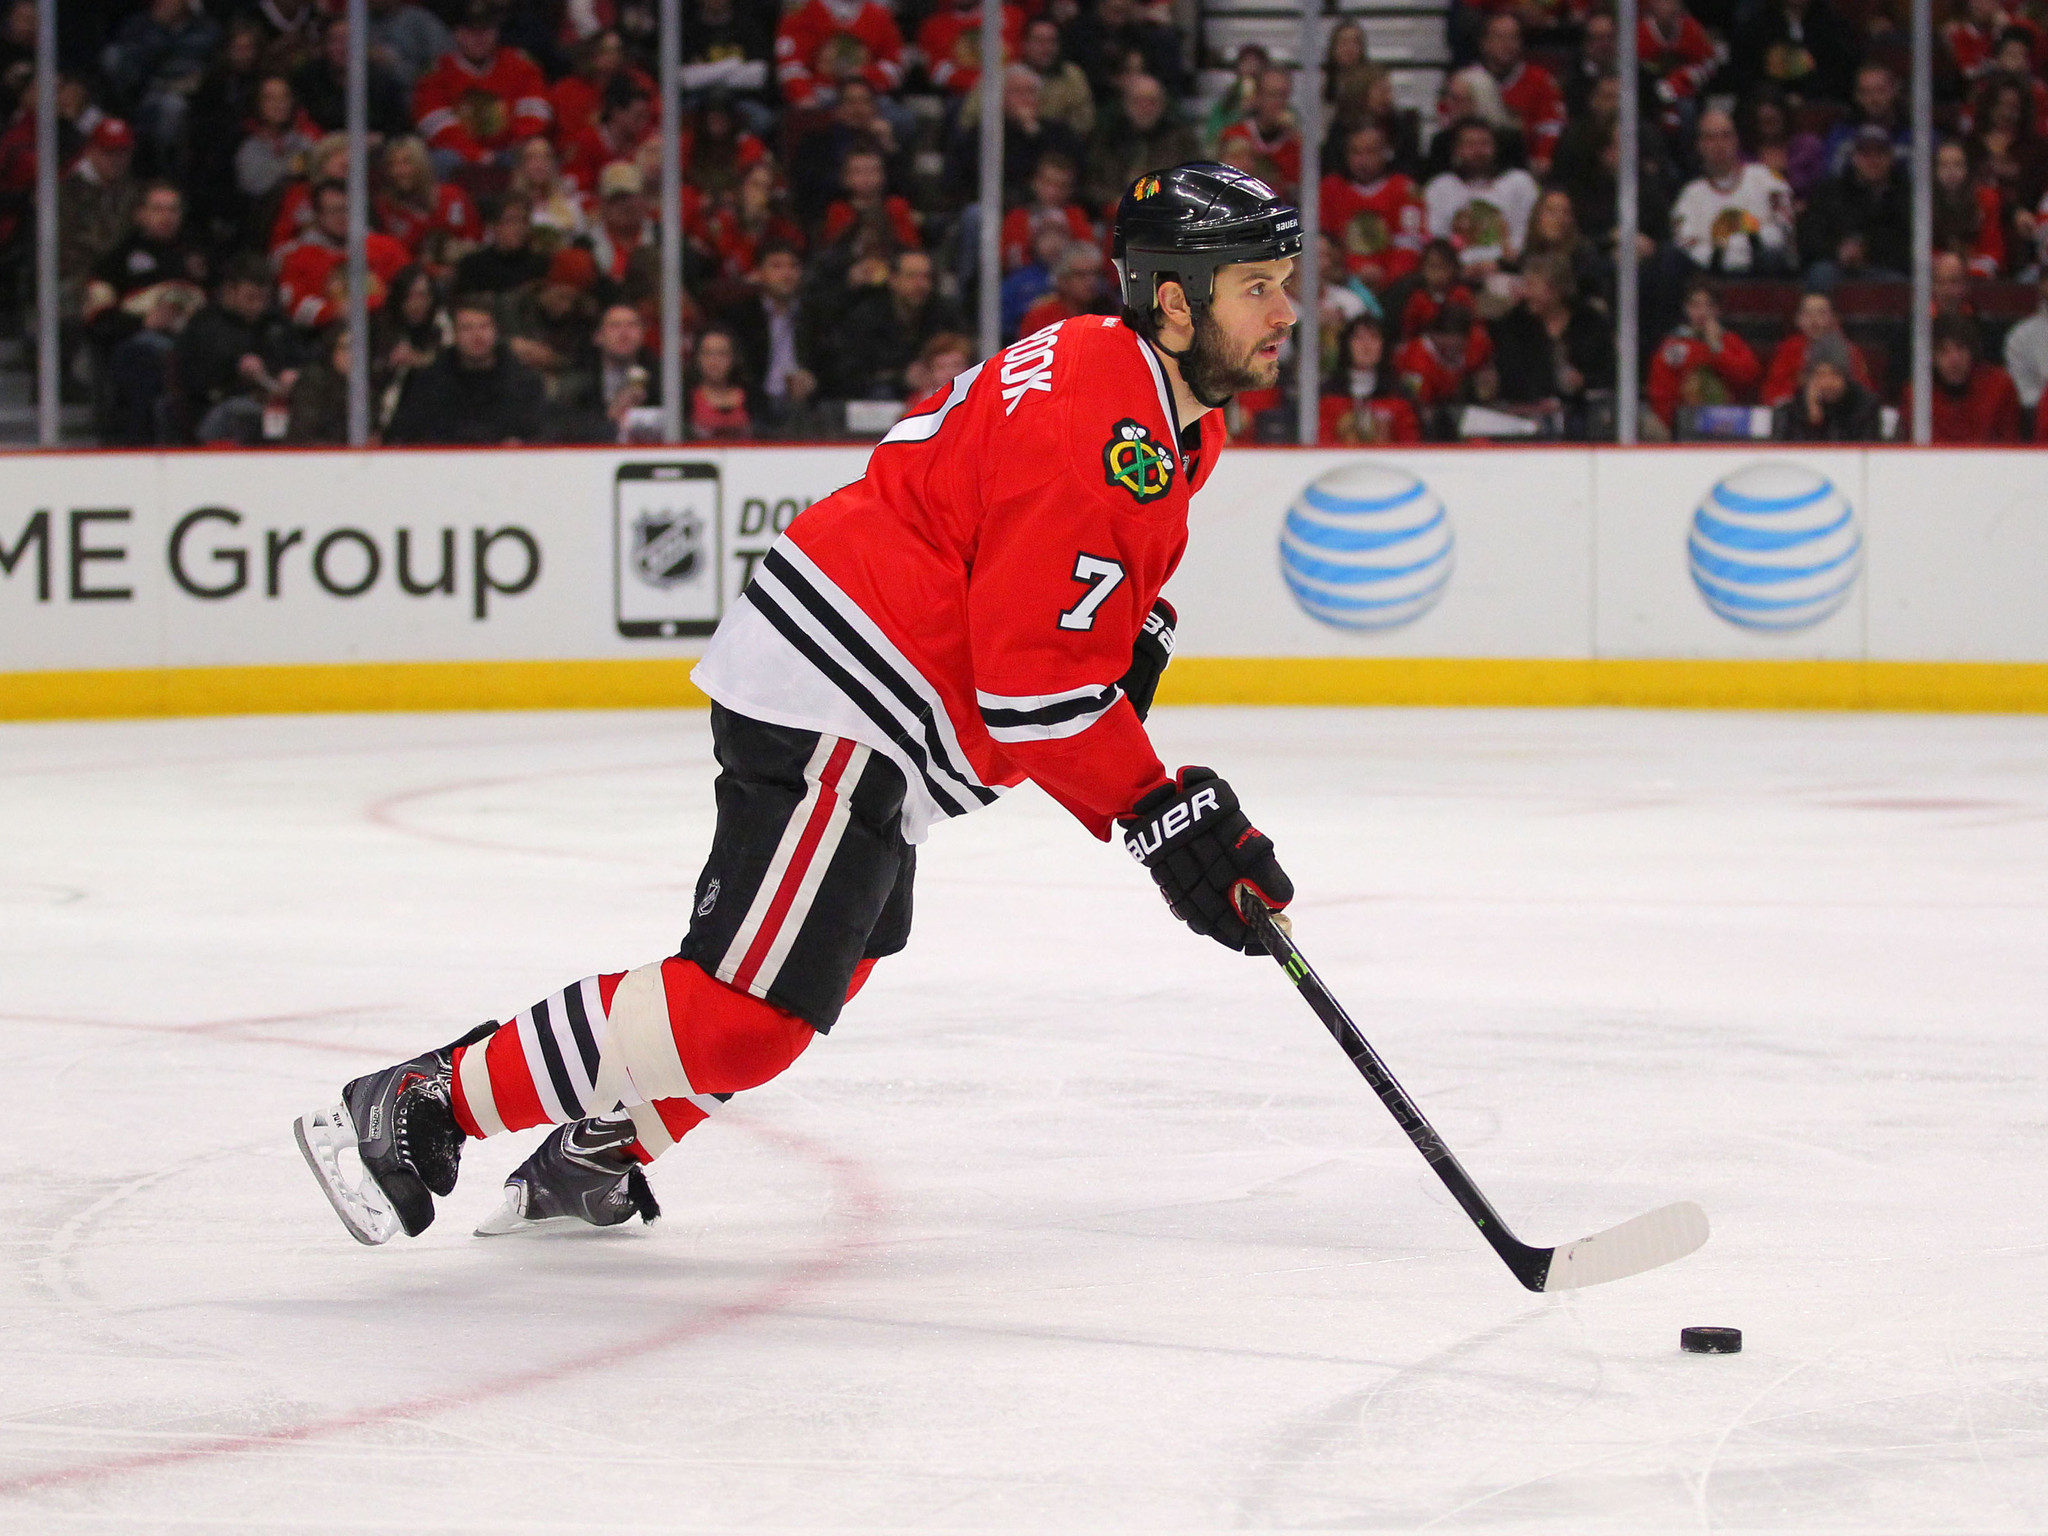 Brent seabrook wallpaper